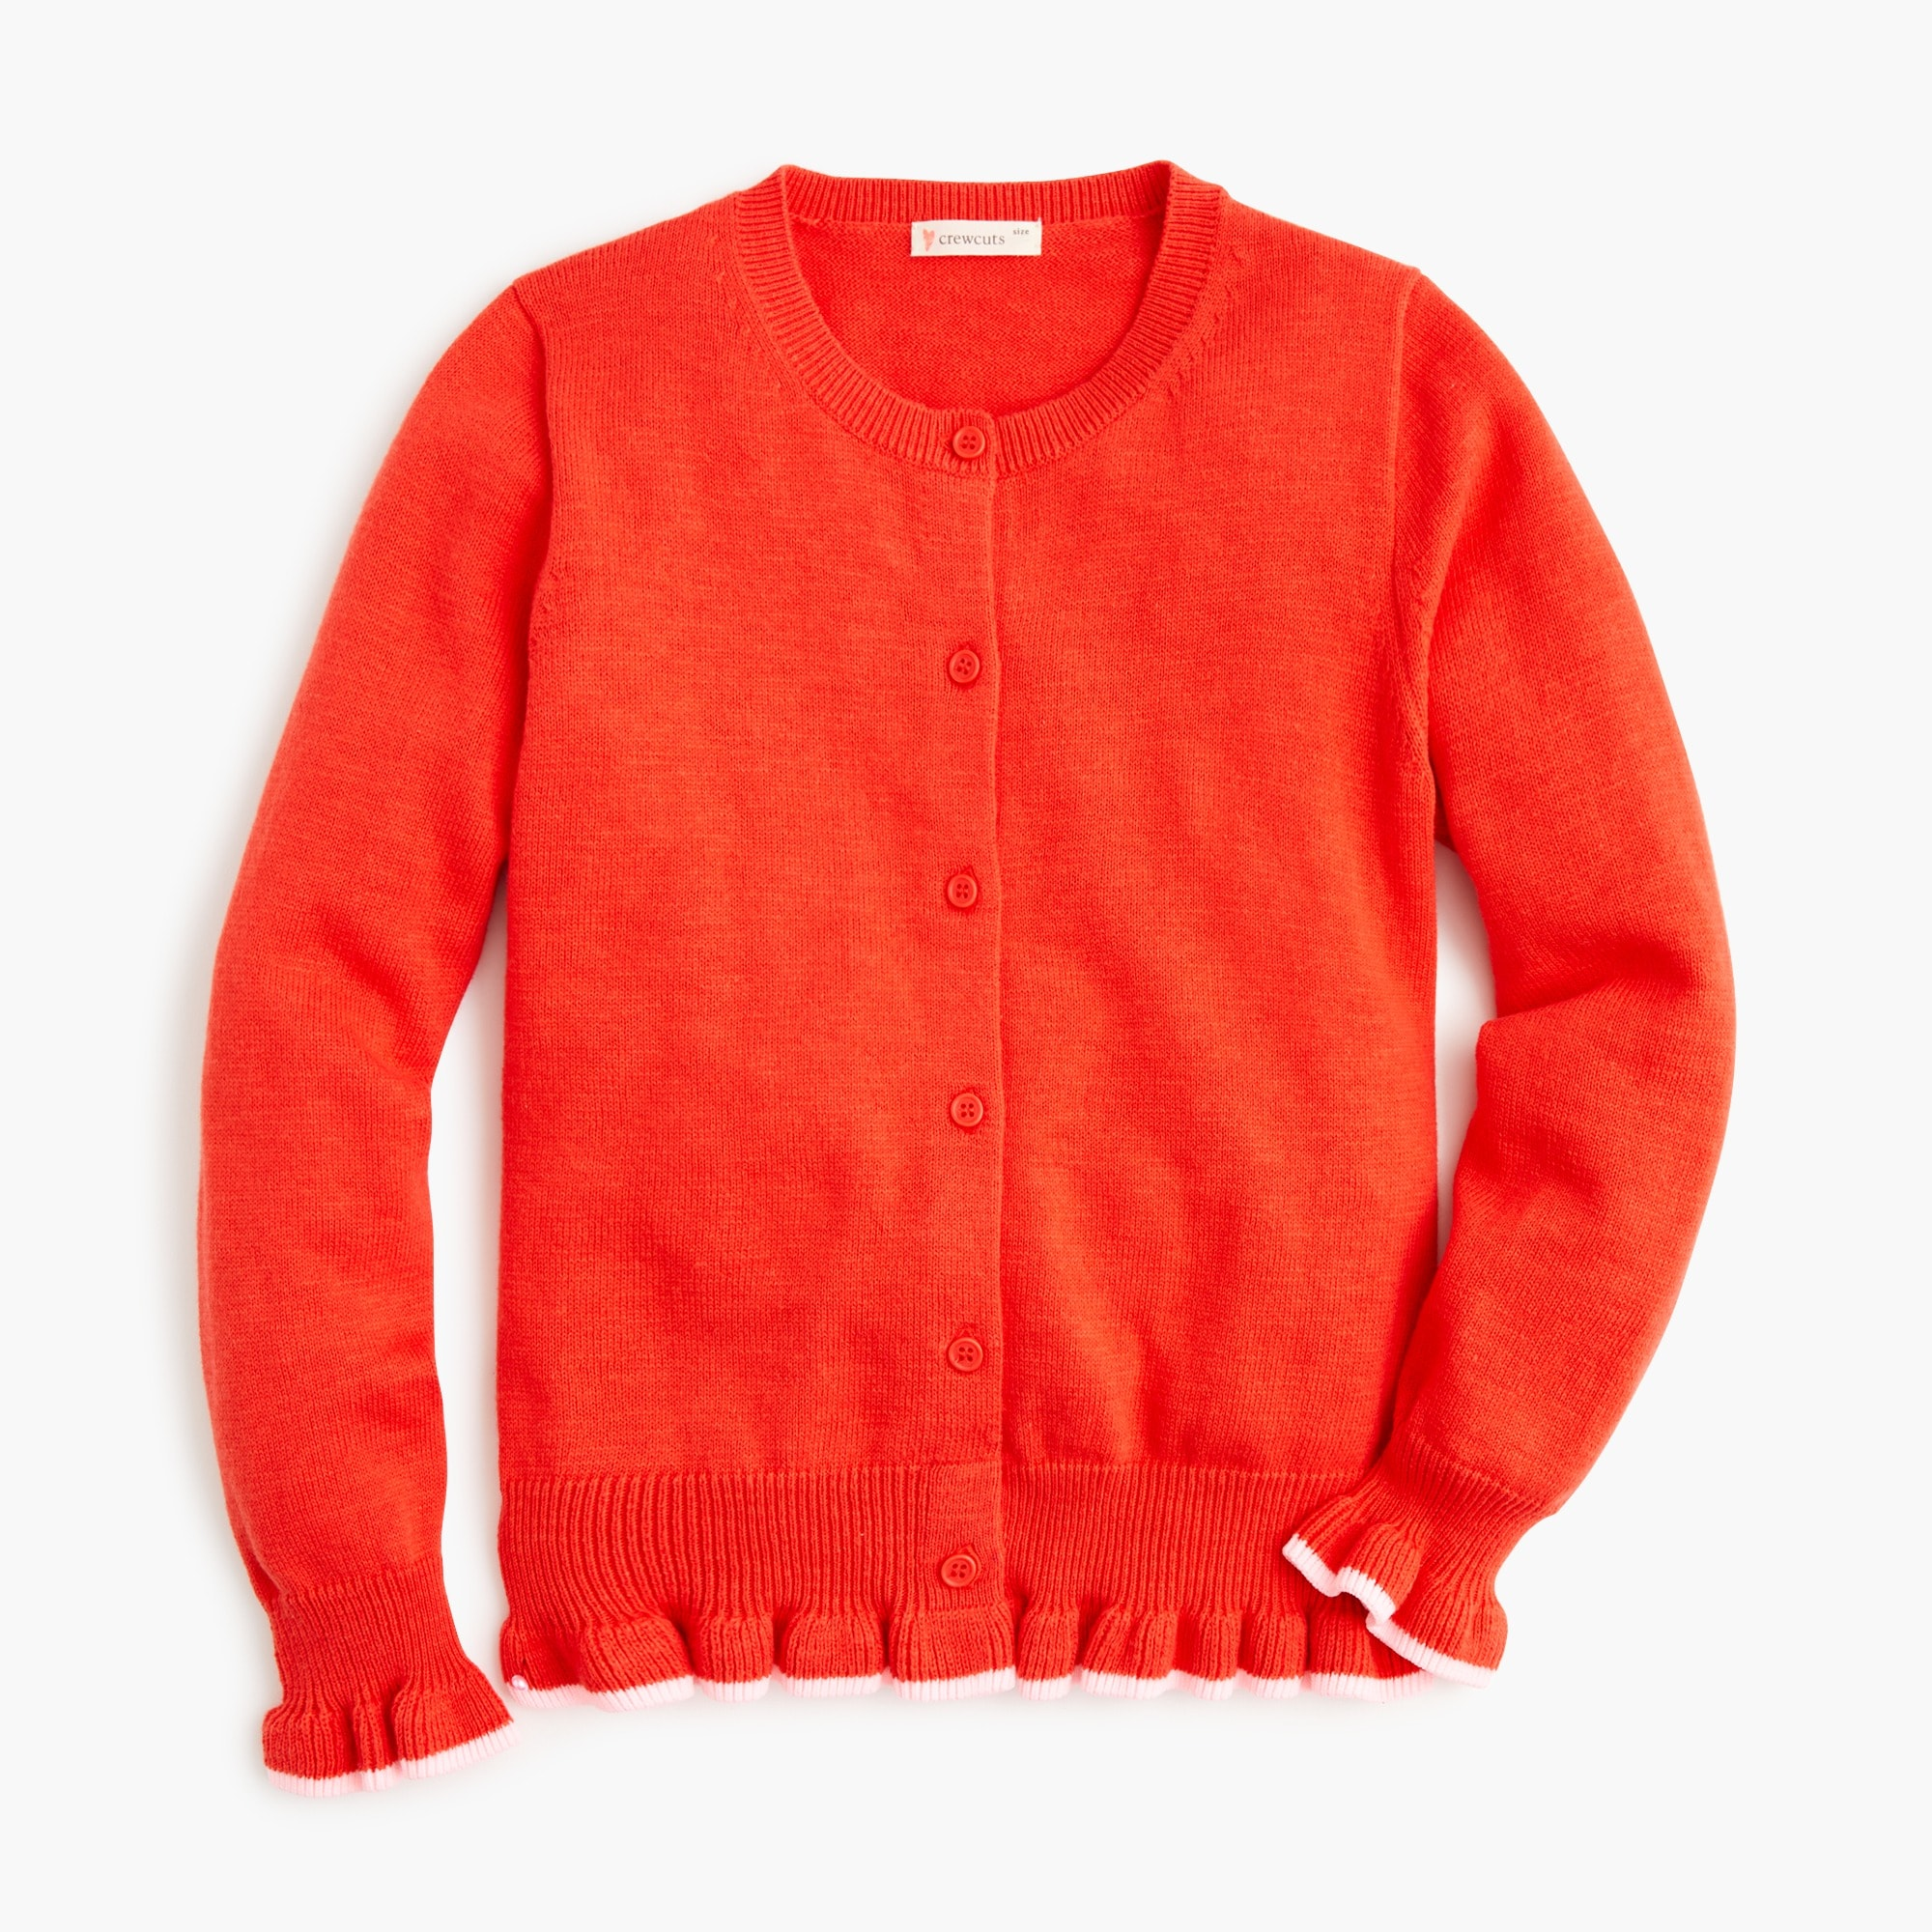 girls Girls' ruffle-trimmed cardigan sweater